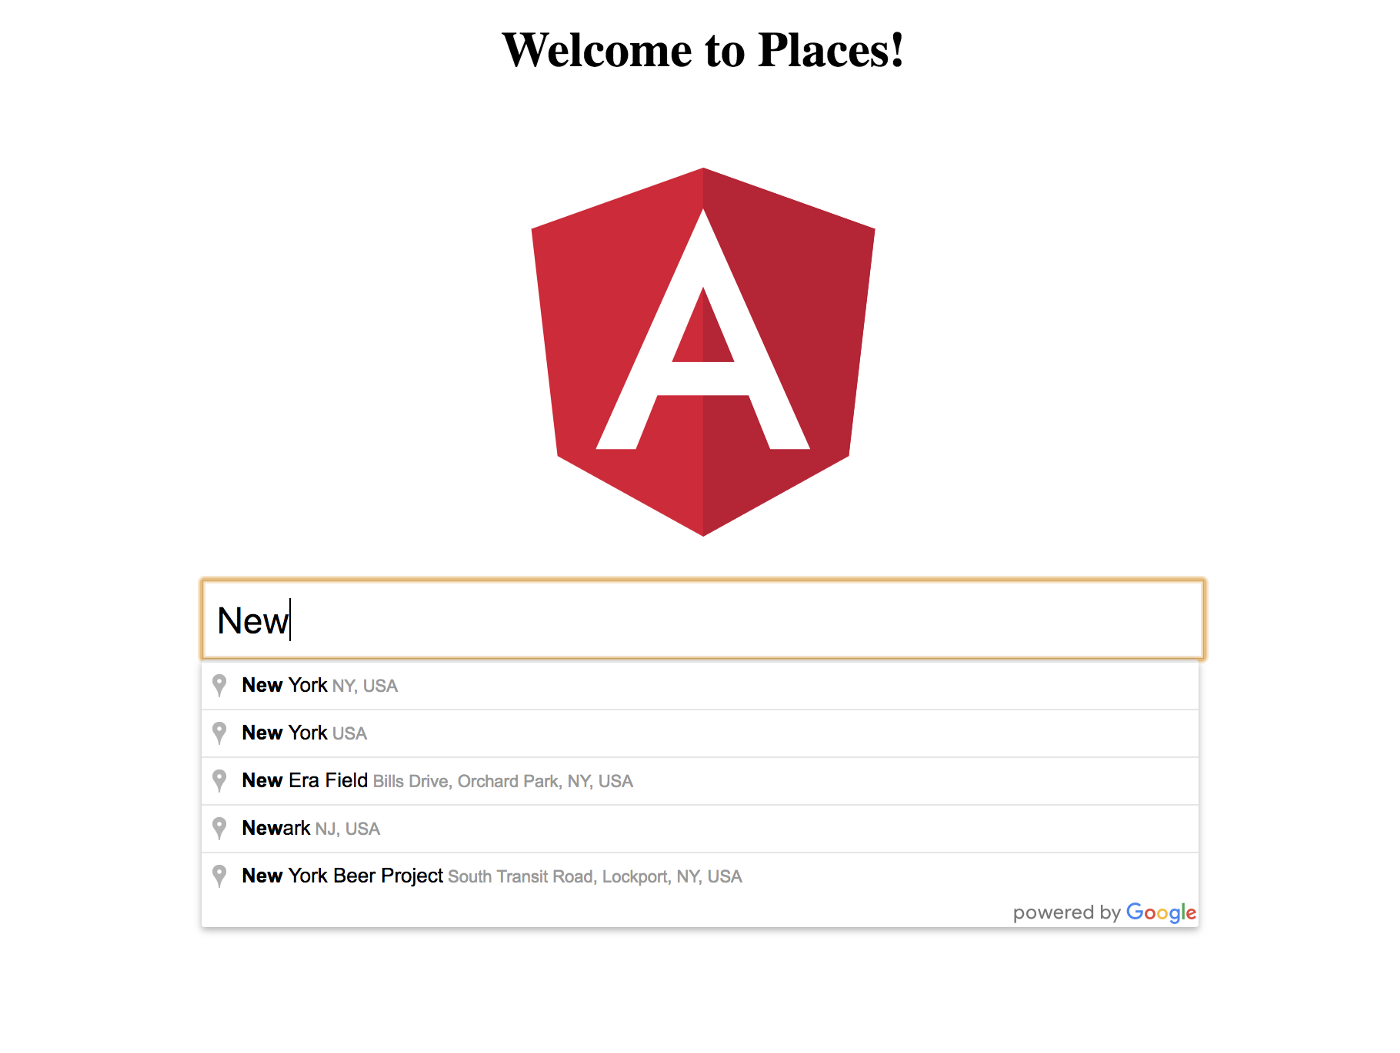 Custom directives in Angular 6 — building a Google places autocomplete